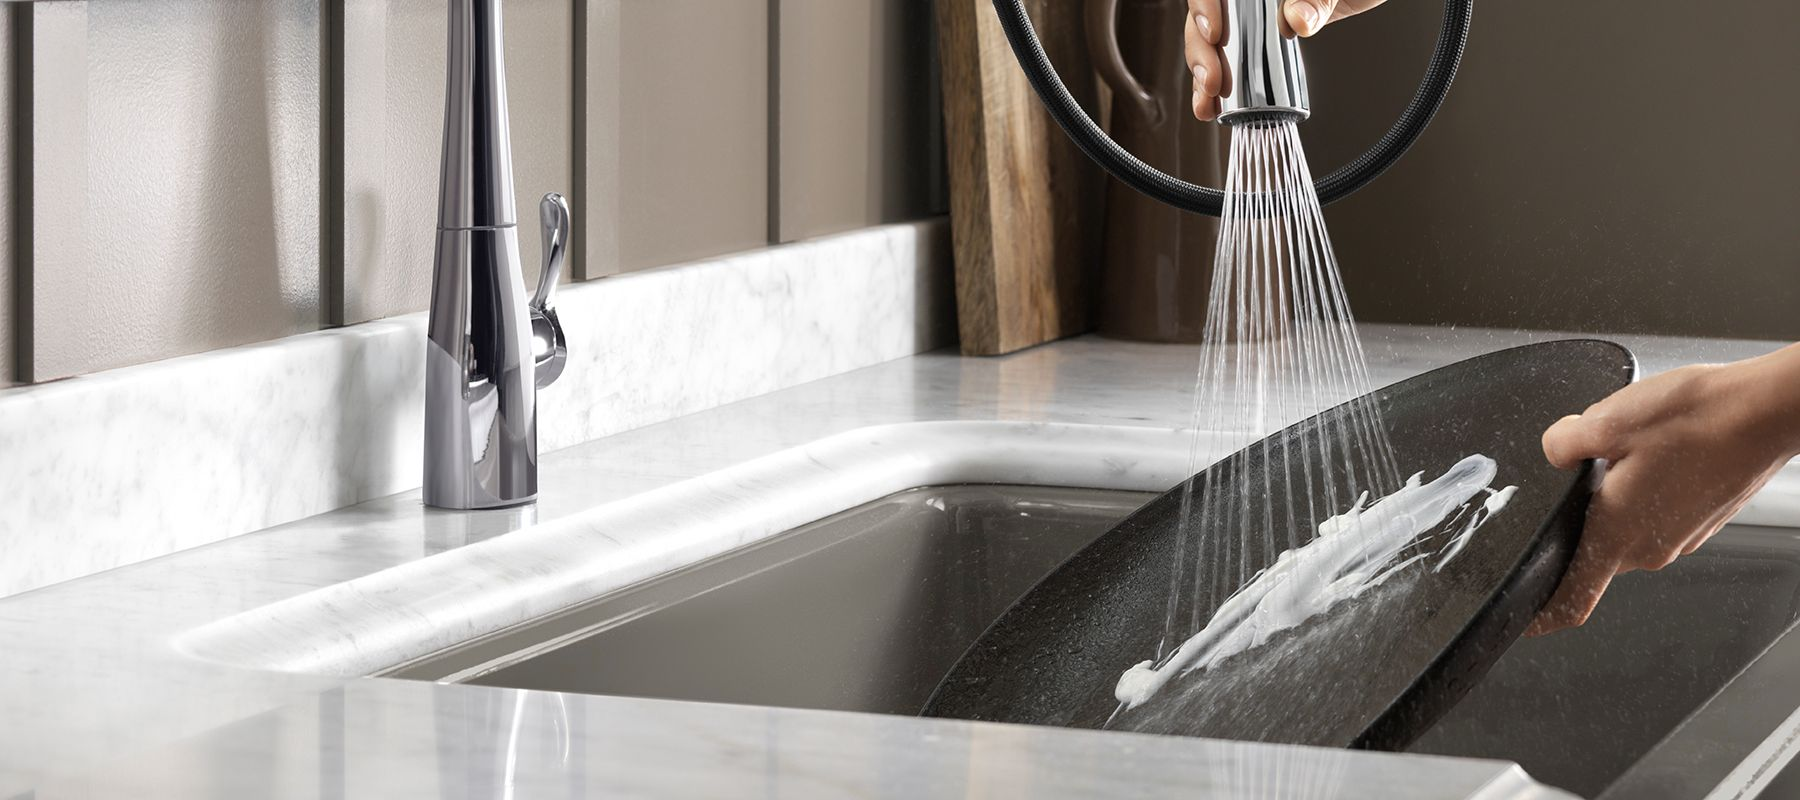 Shop all Kitchen Faucets | Kohler.com | KOHLER